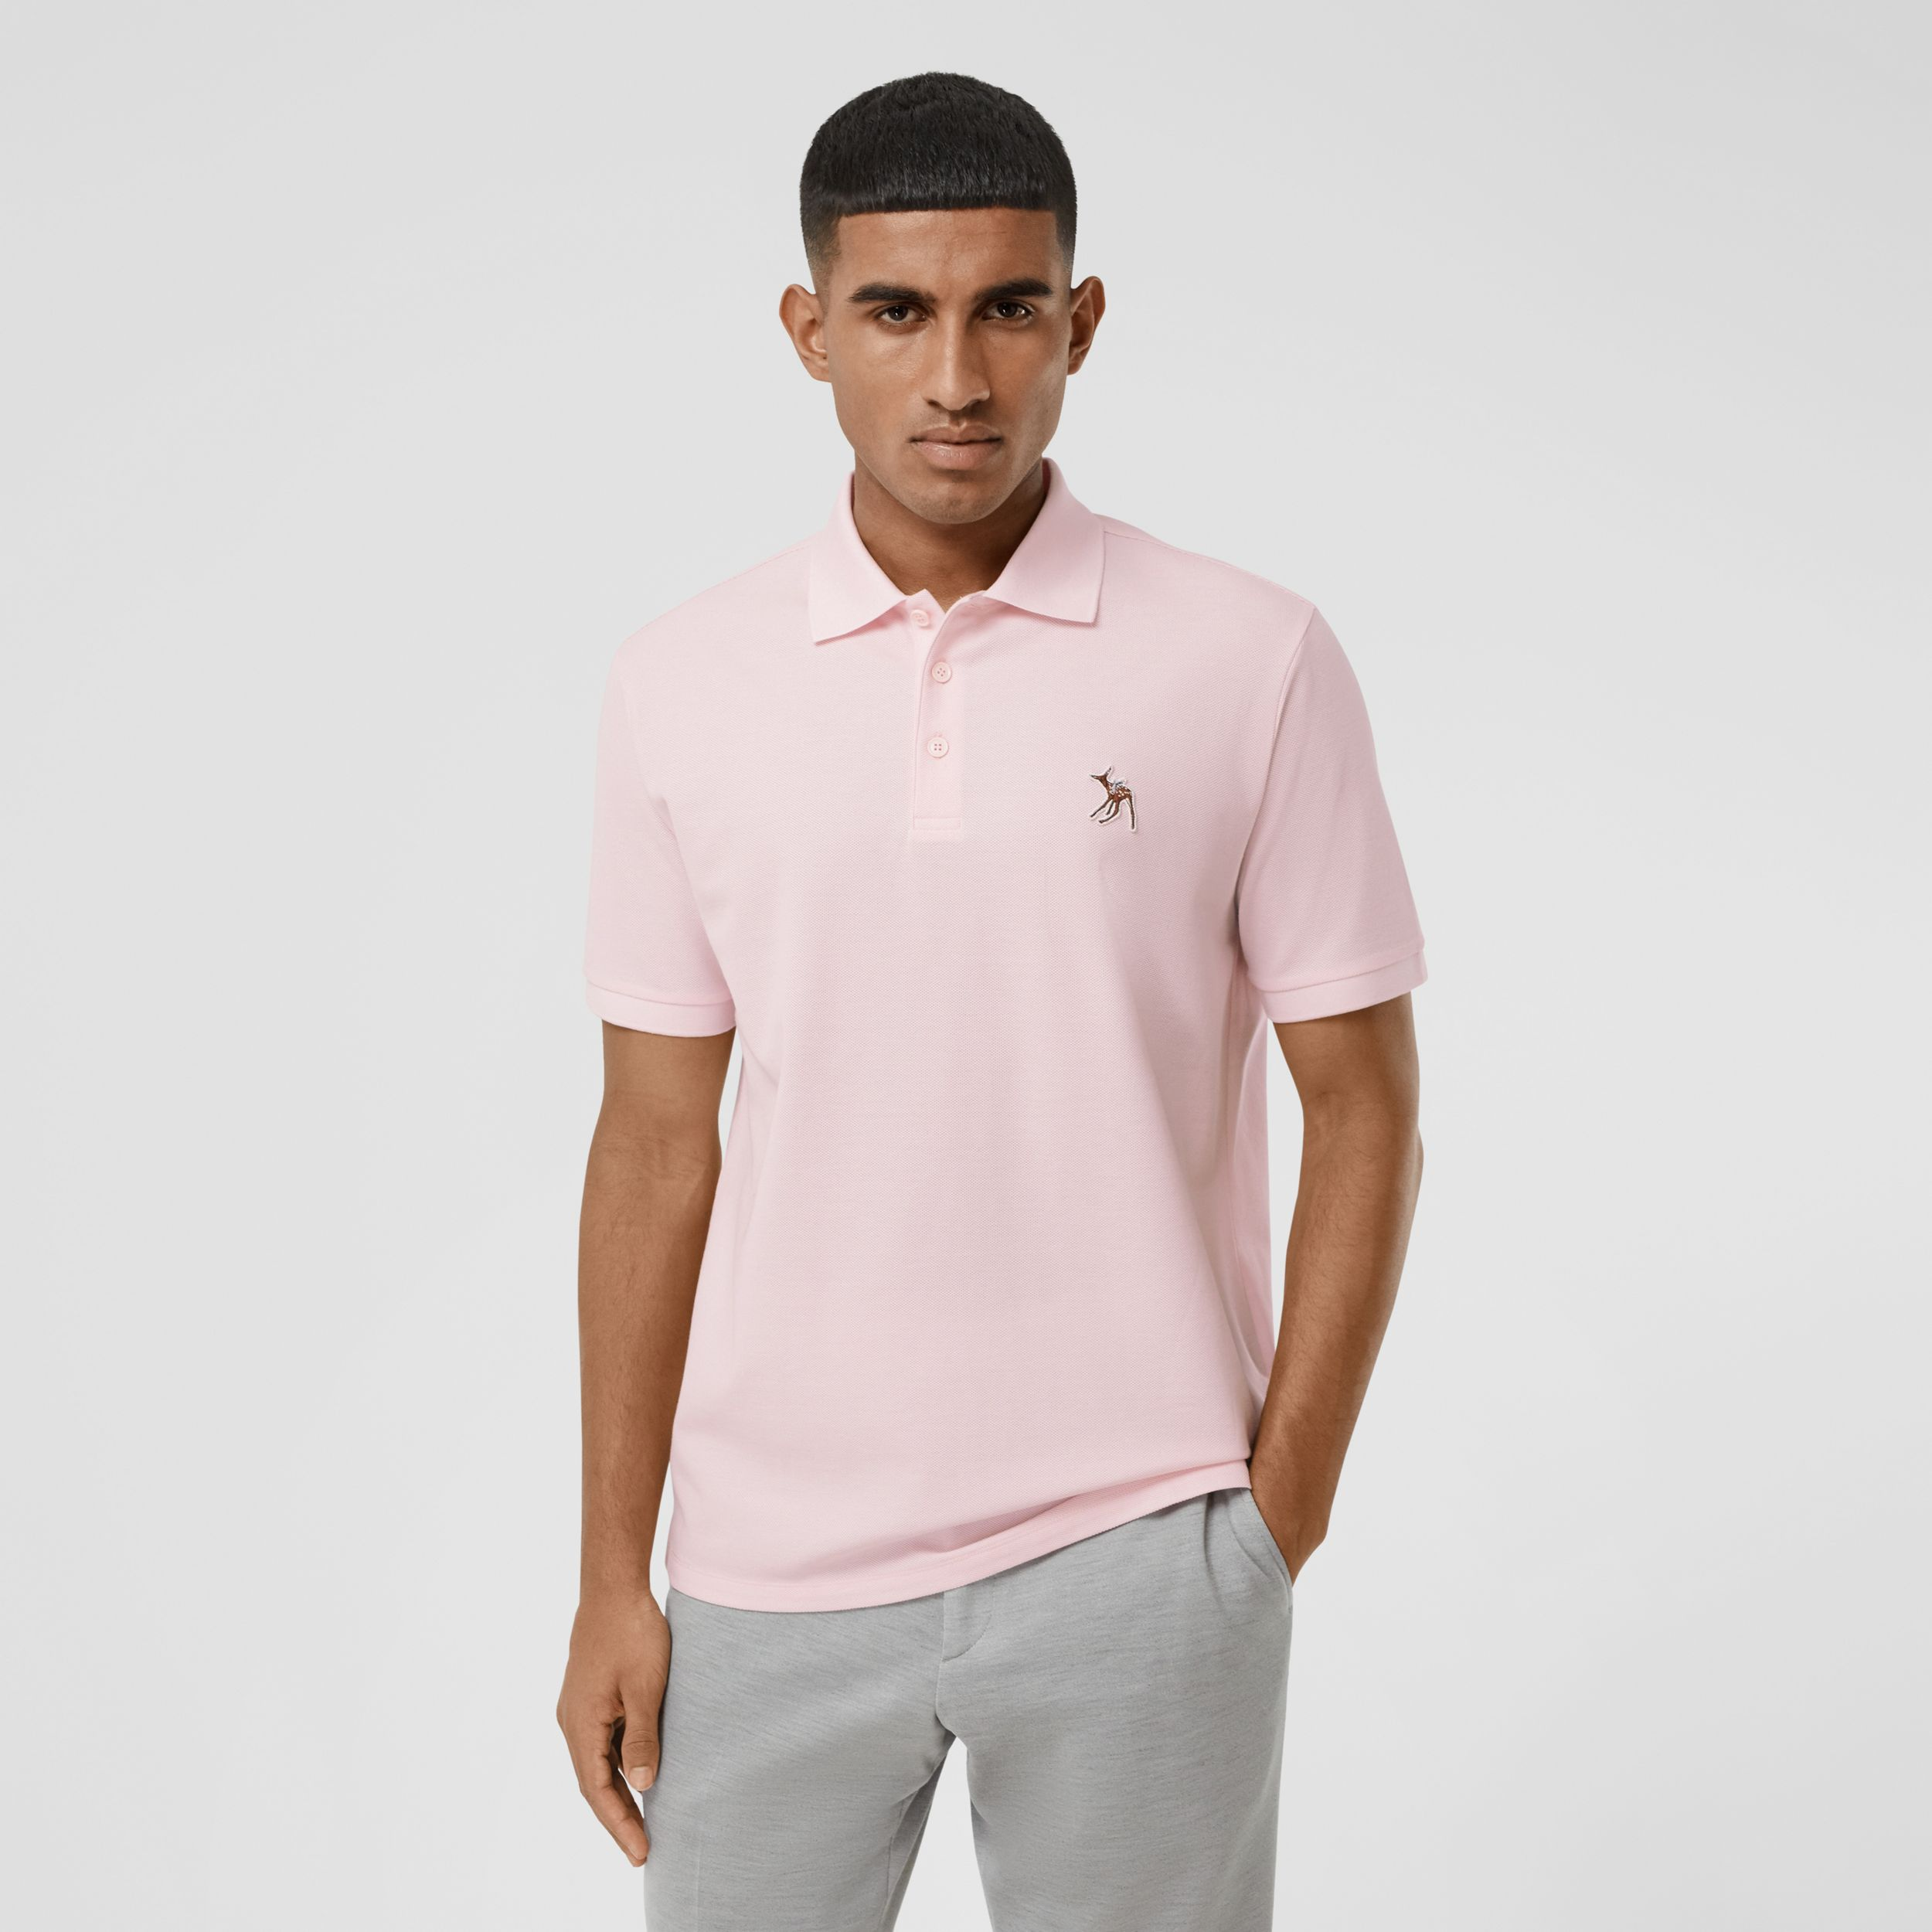 Deer Appliqué Cotton Piqué Polo Shirt in Alabaster Pink - Men | Burberry - 1